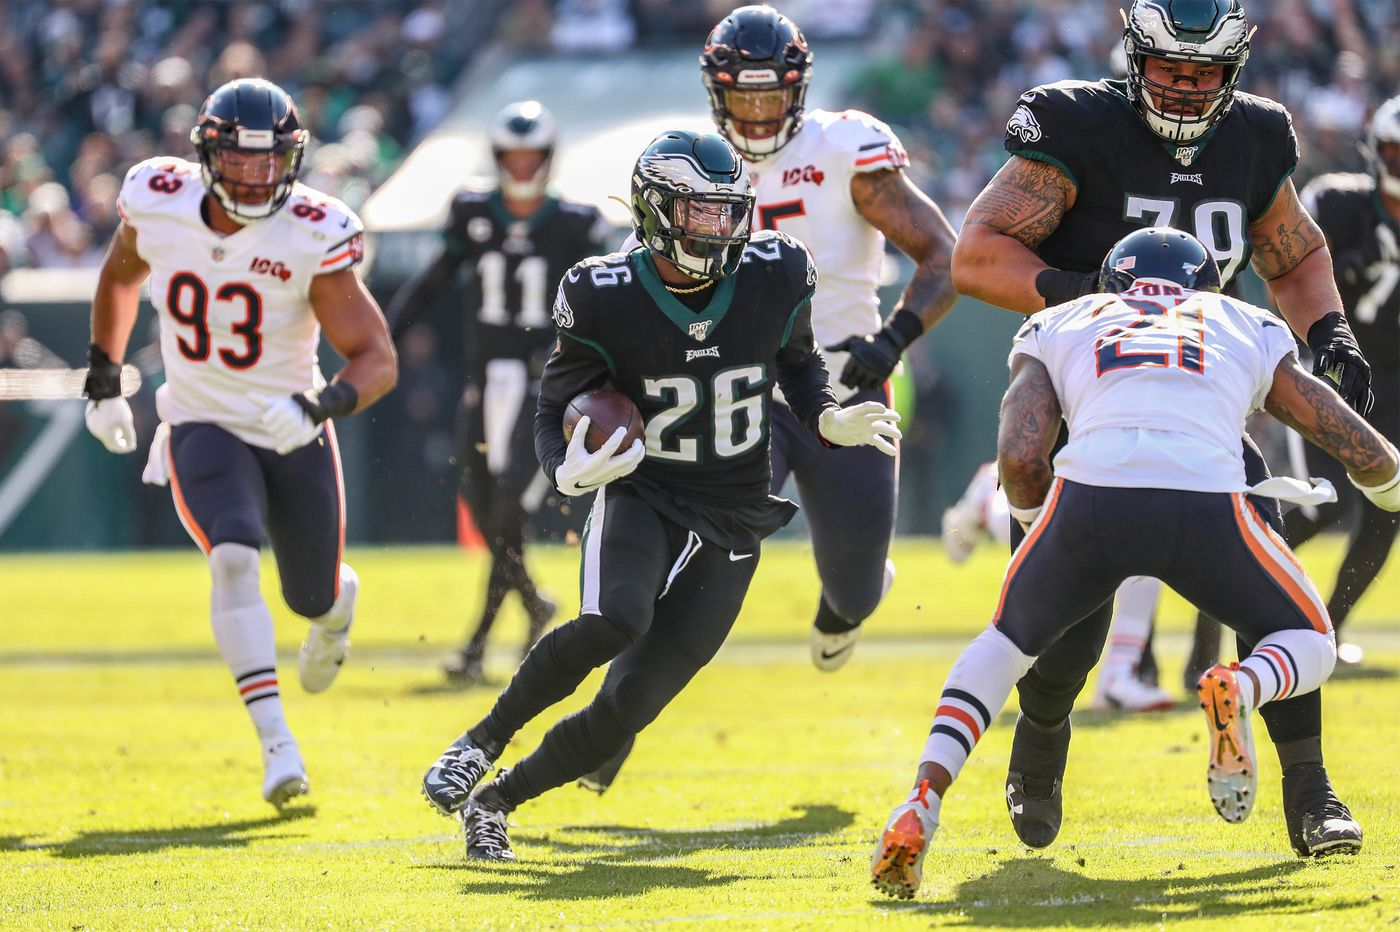 Grading the Eagles: Jordan Howard, Miles Sanders get high marks in win over Chicago Bears | Paul Domowitch